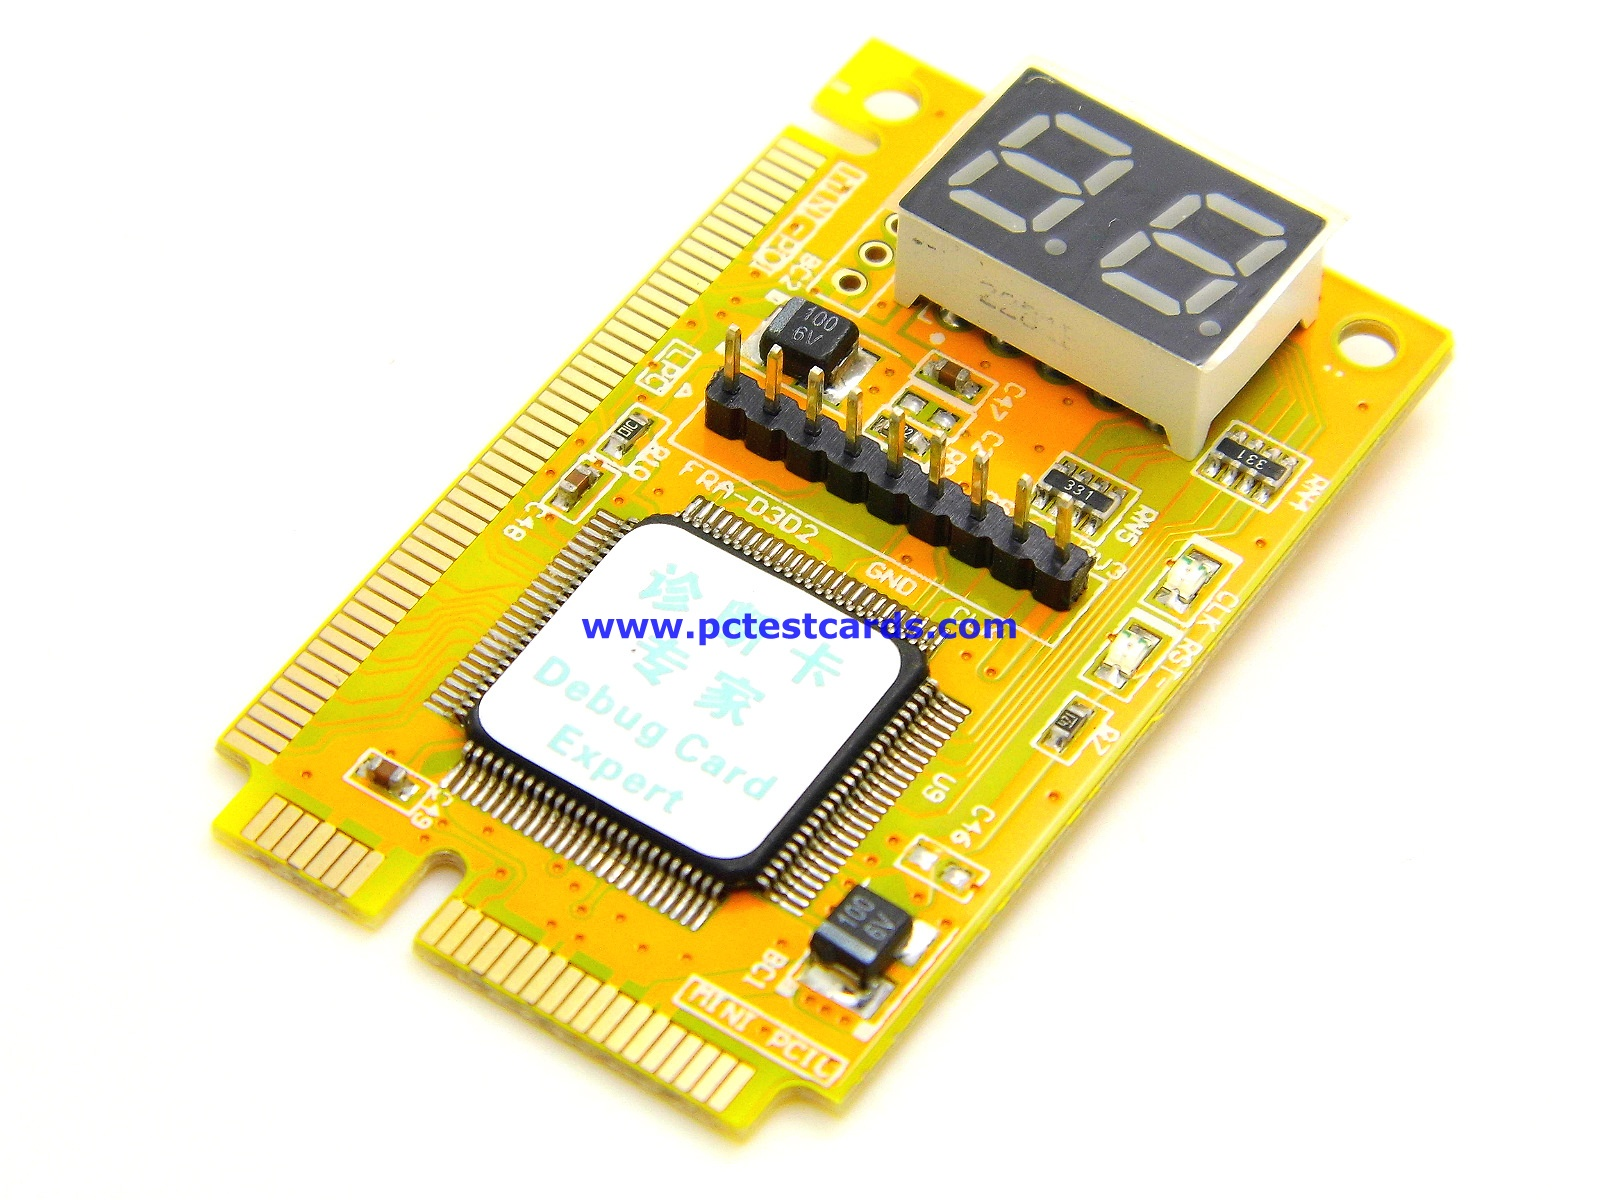 Laptop Computer Motherboard Android Diagnostic Post Test Kit New Pcie Usb Pc Jolash Pl